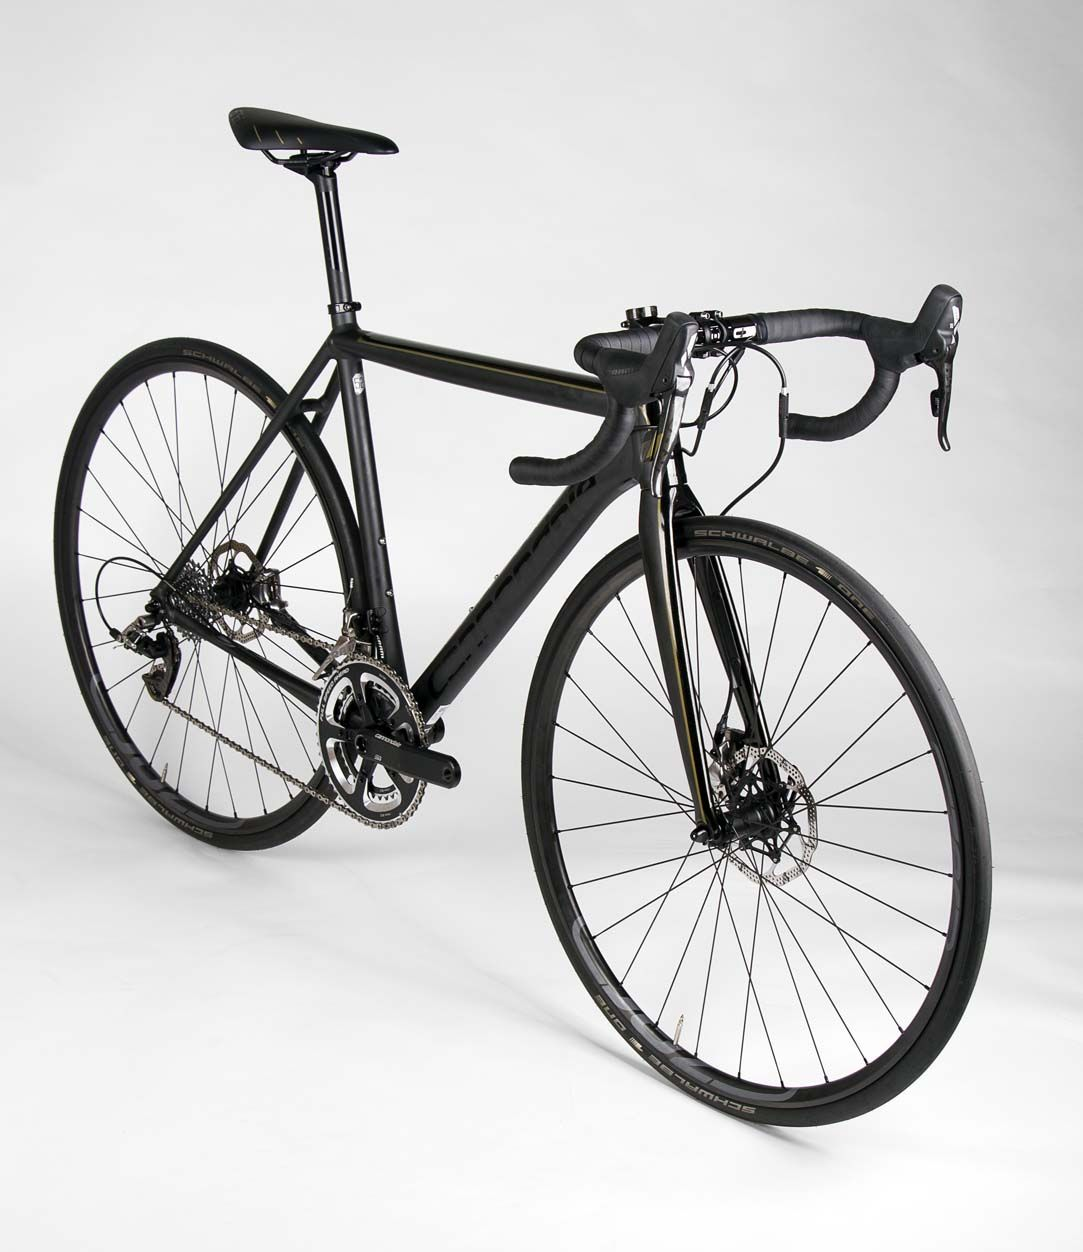 1aa6289ceb5 Bike test 04: RIDE 69 – Cannondale CAAD10 Black Inc Disc | To ride ...